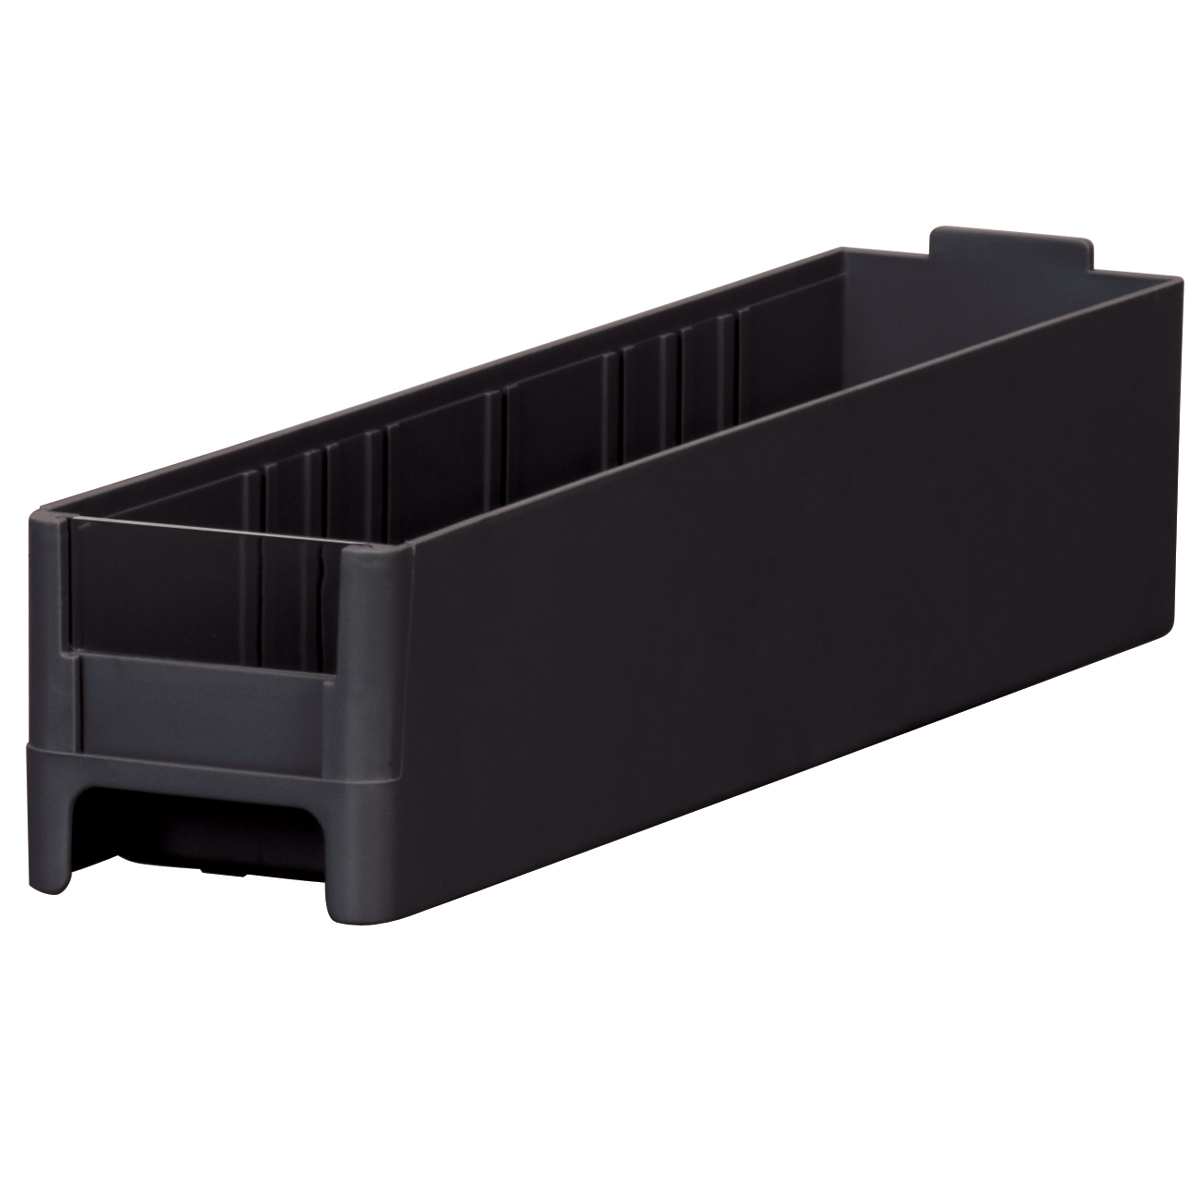 19-Series Cabinet Drawer 2-3/16 x 2-1/16 x 10-9/16, Black.  This item sold in carton quantities of 56.